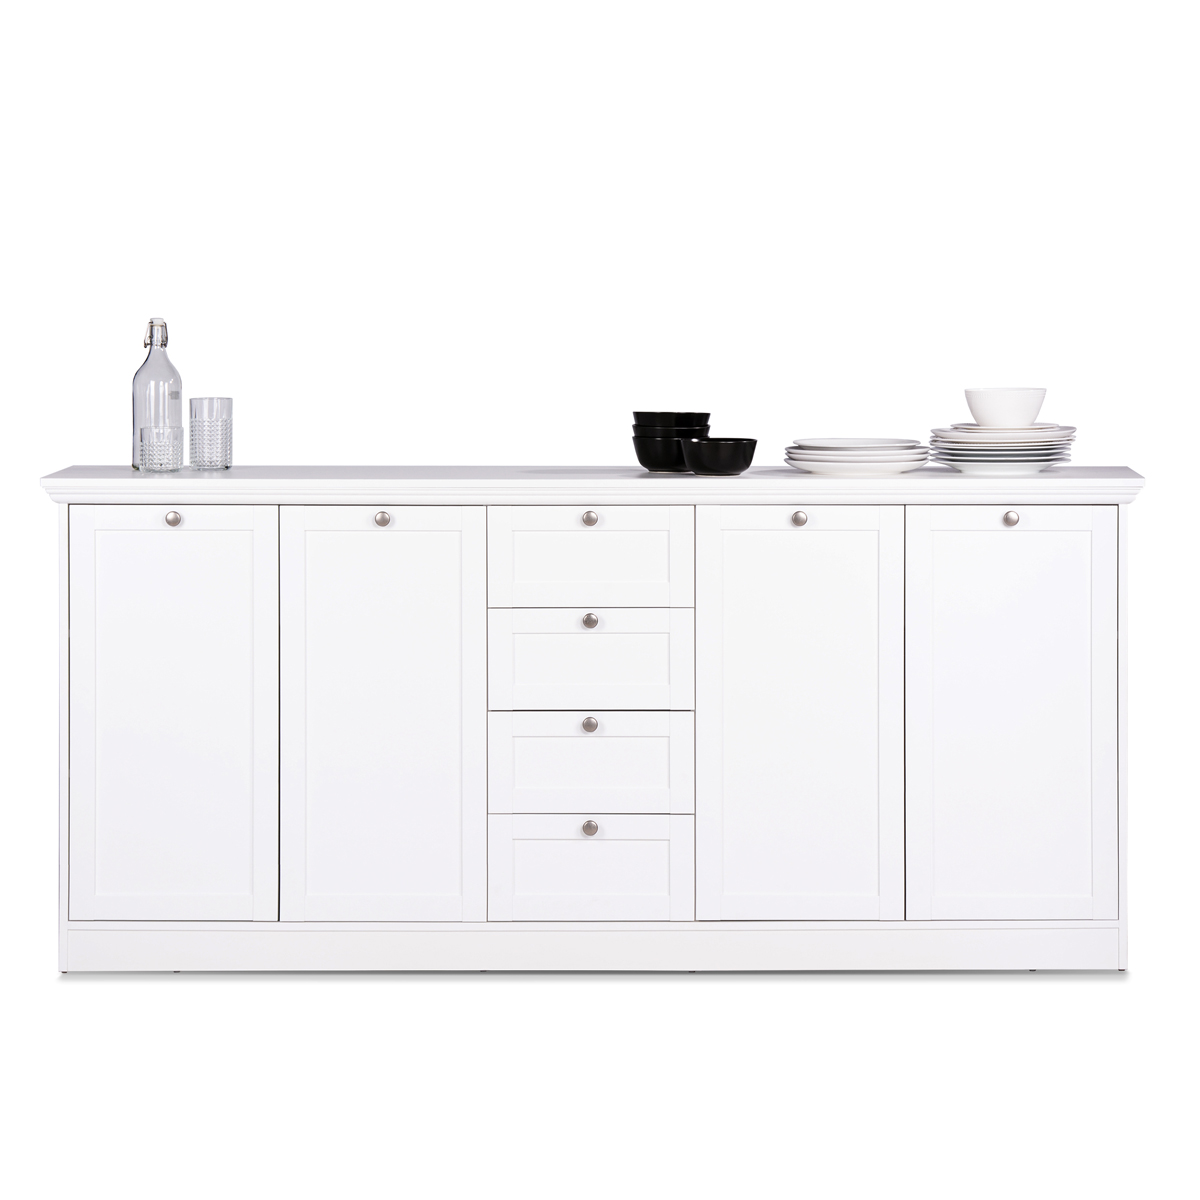 sideboard landwood 52 landhausstil anrichte kommode wei 4. Black Bedroom Furniture Sets. Home Design Ideas